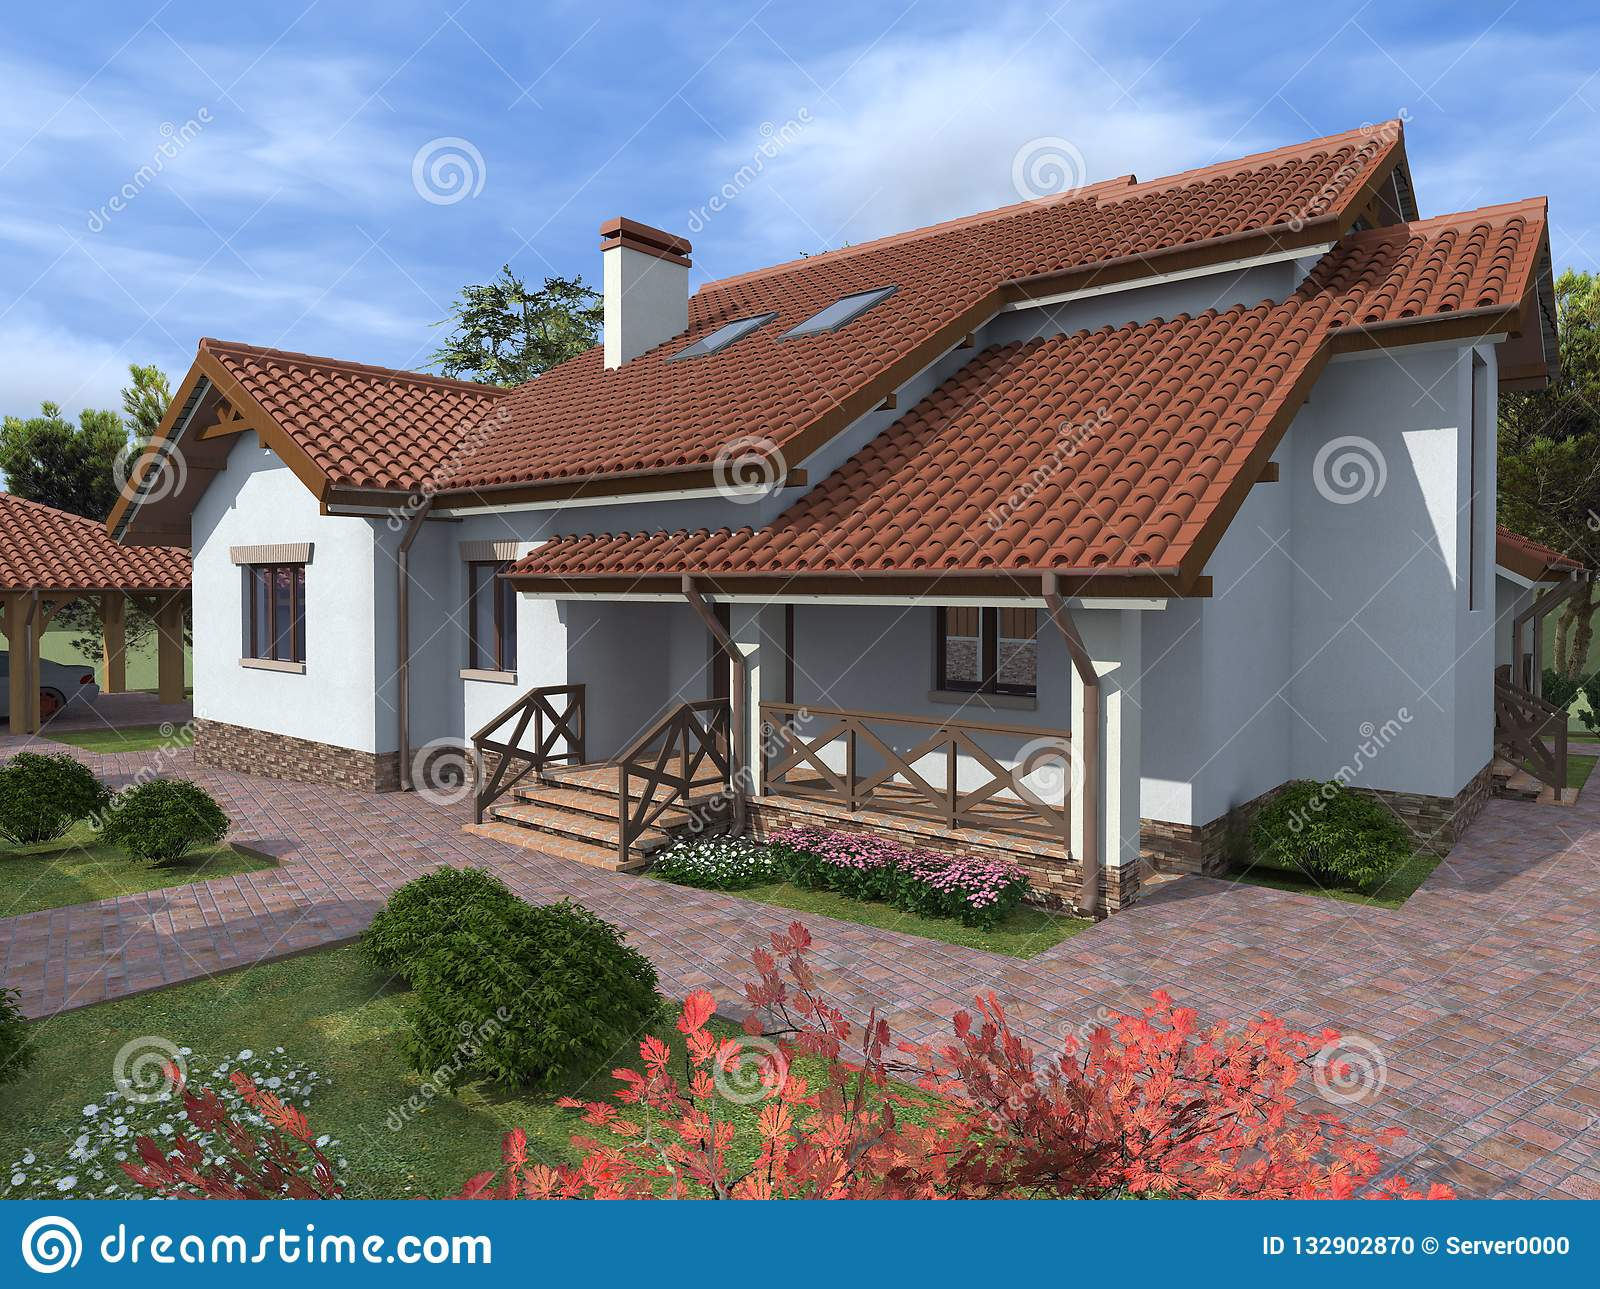 Private House Cottage Tile Roof Stock Photo Image Of Large Project 132902870